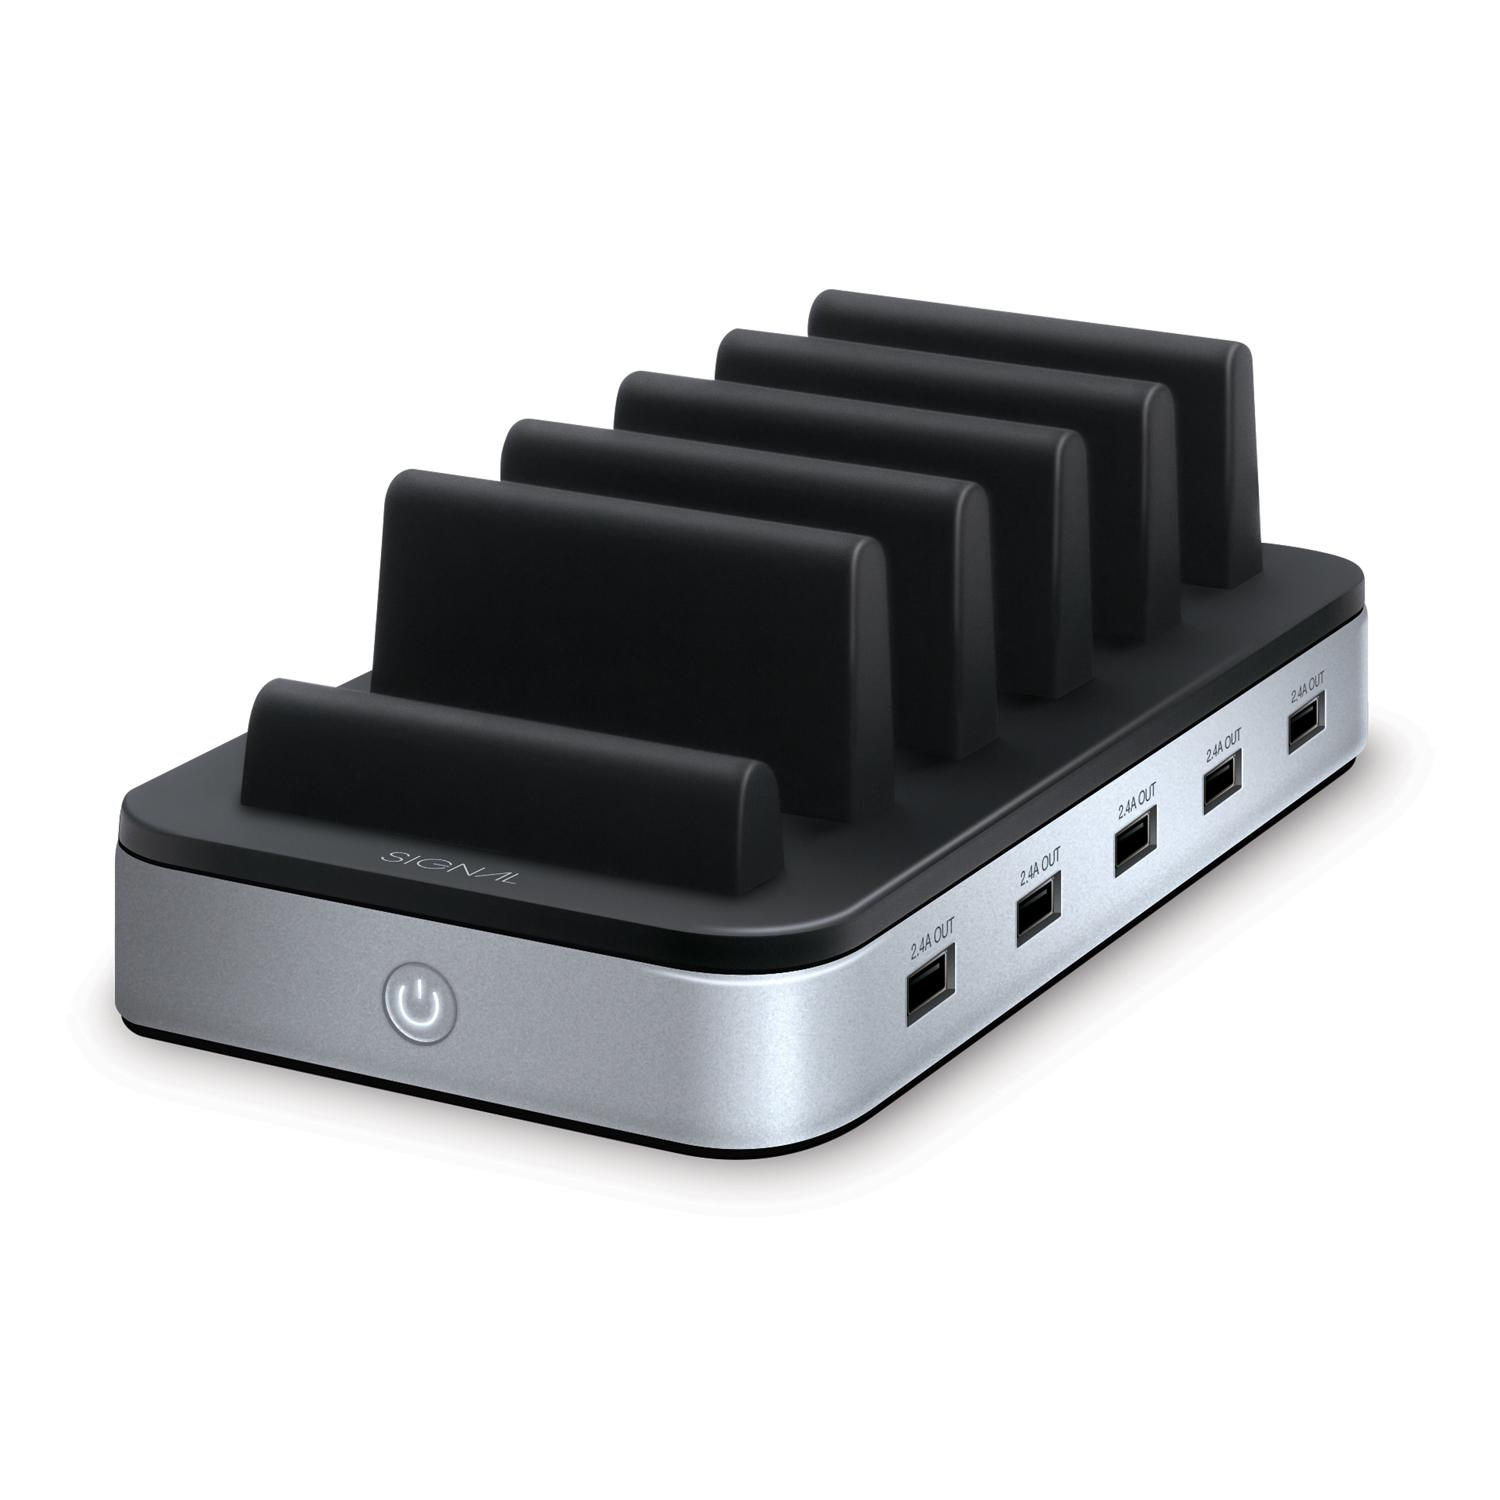 Signal Power Station 5 High Performance Universal Charge Dock